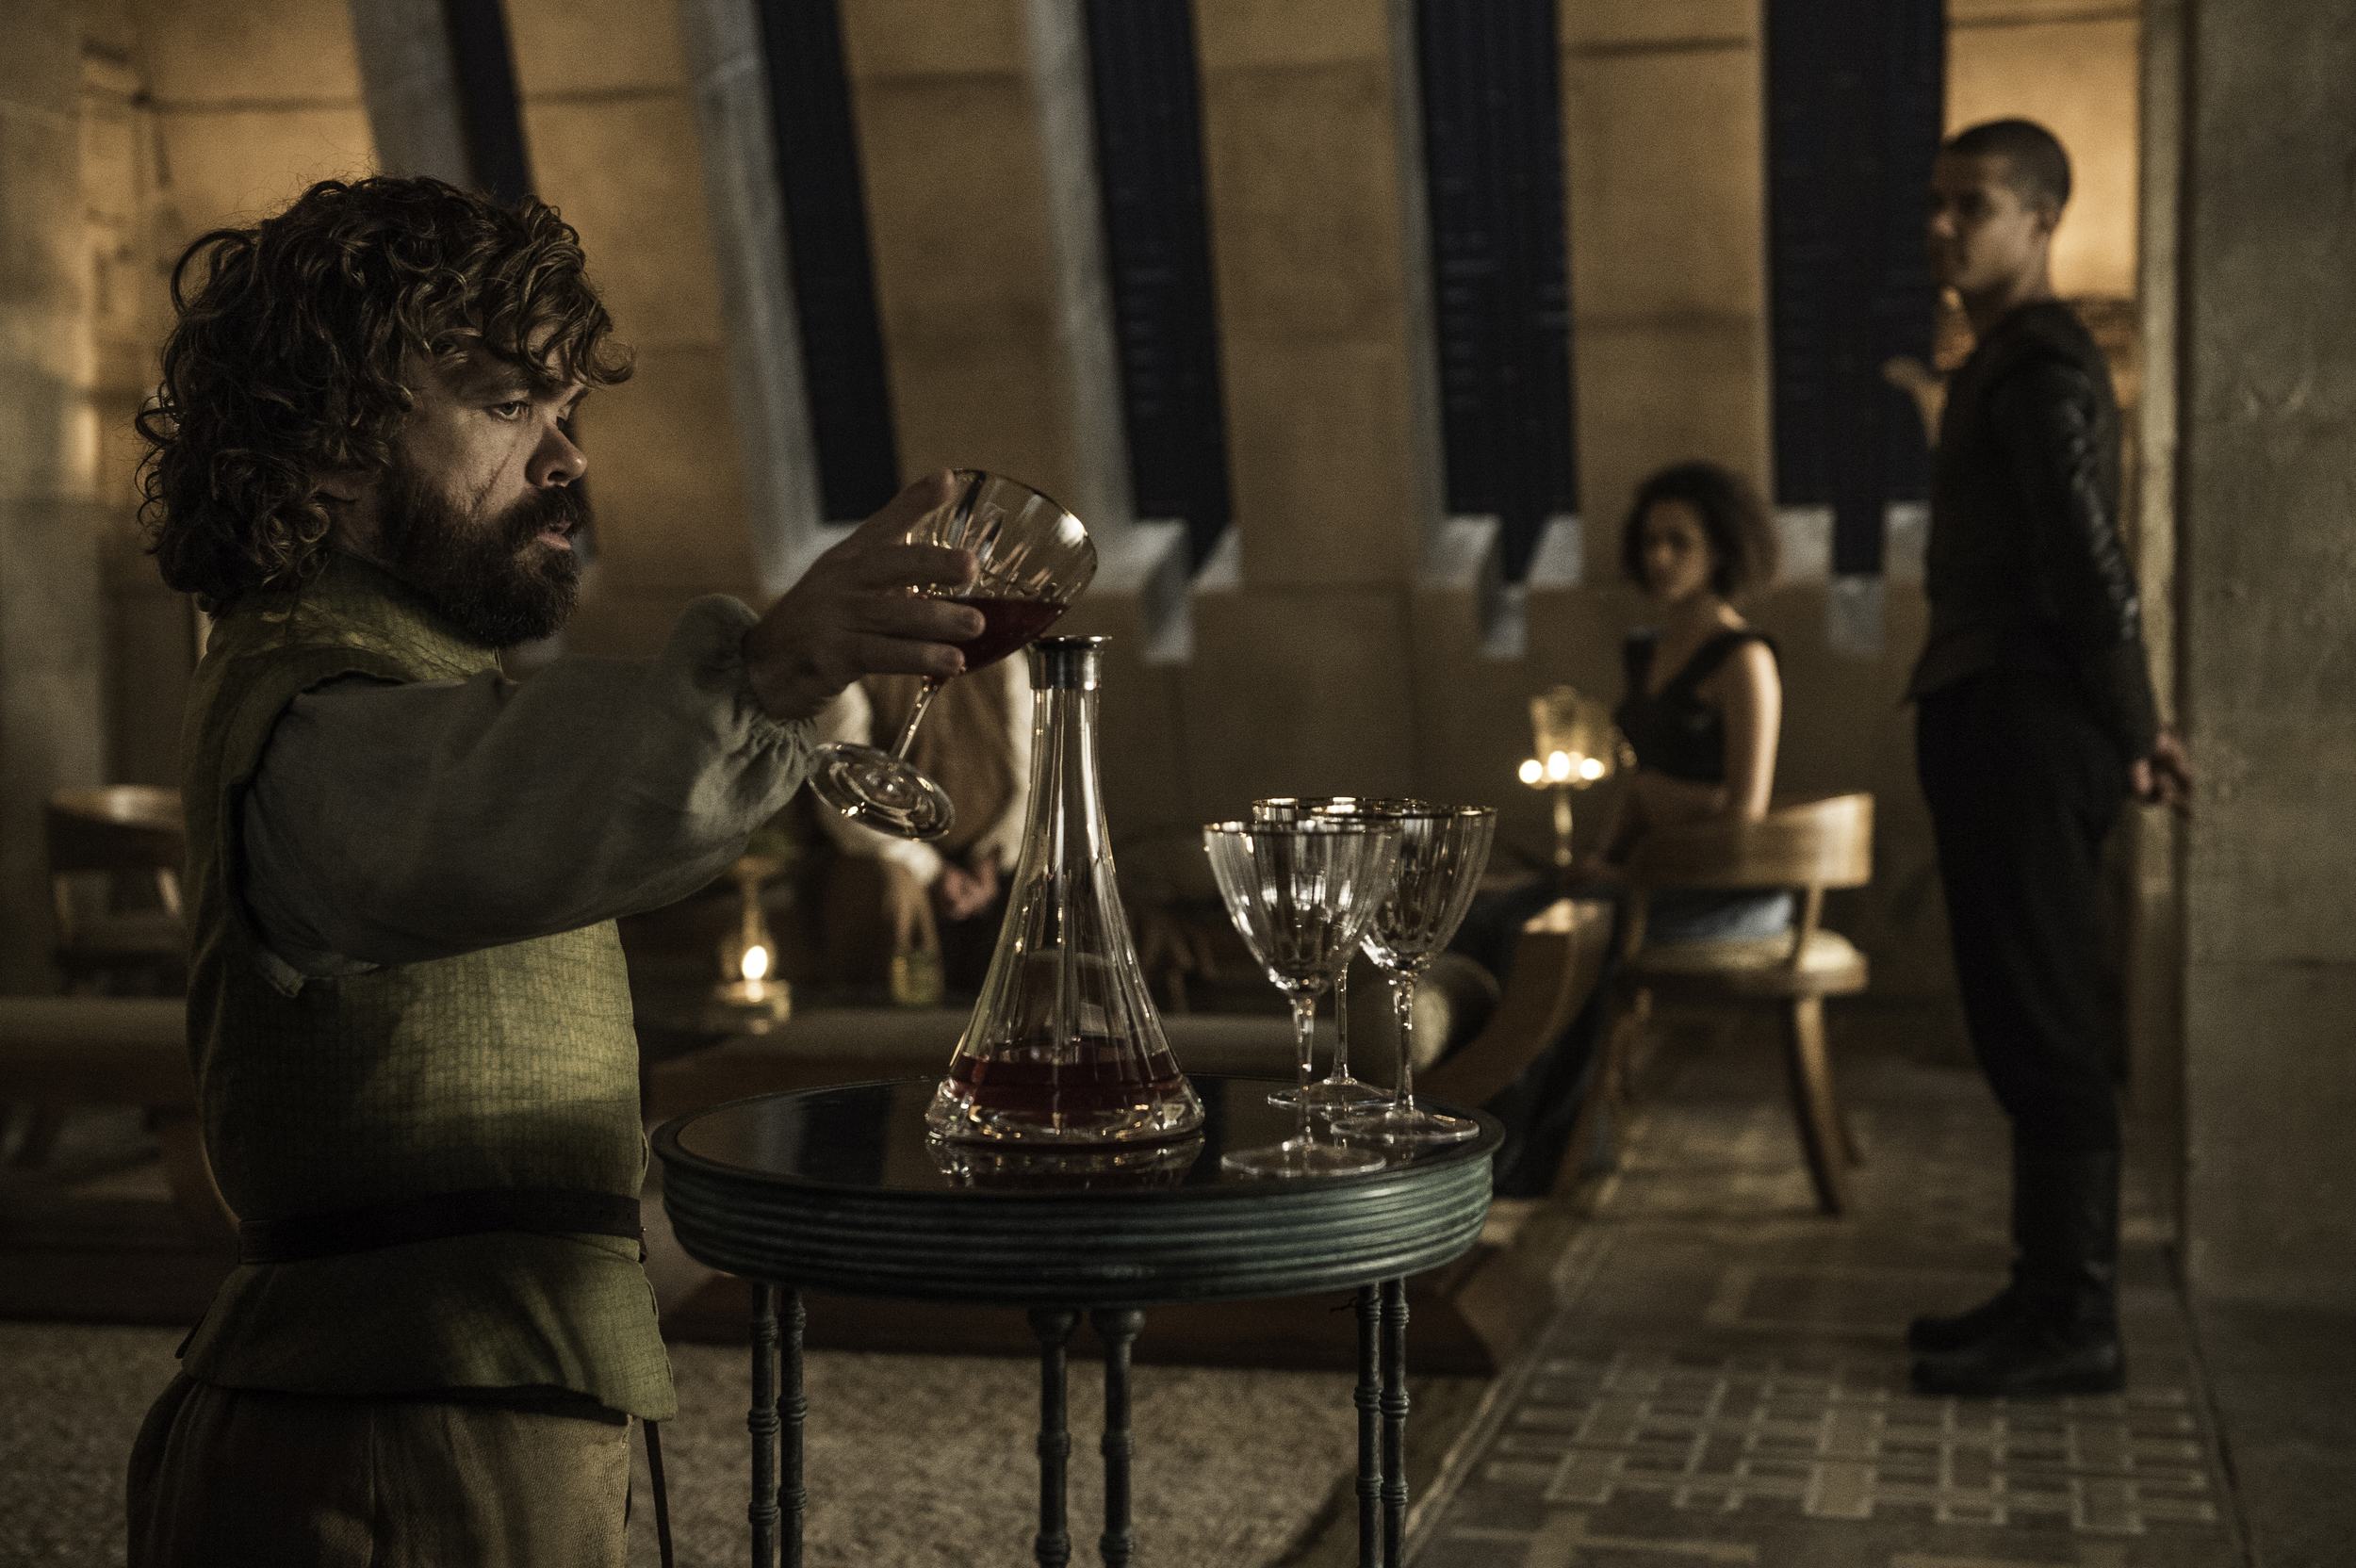 Peter Dinklage as Tyrion Lannister, Nathalie Emmanuel as Missandei and Jacob Anderson as Grey Worm